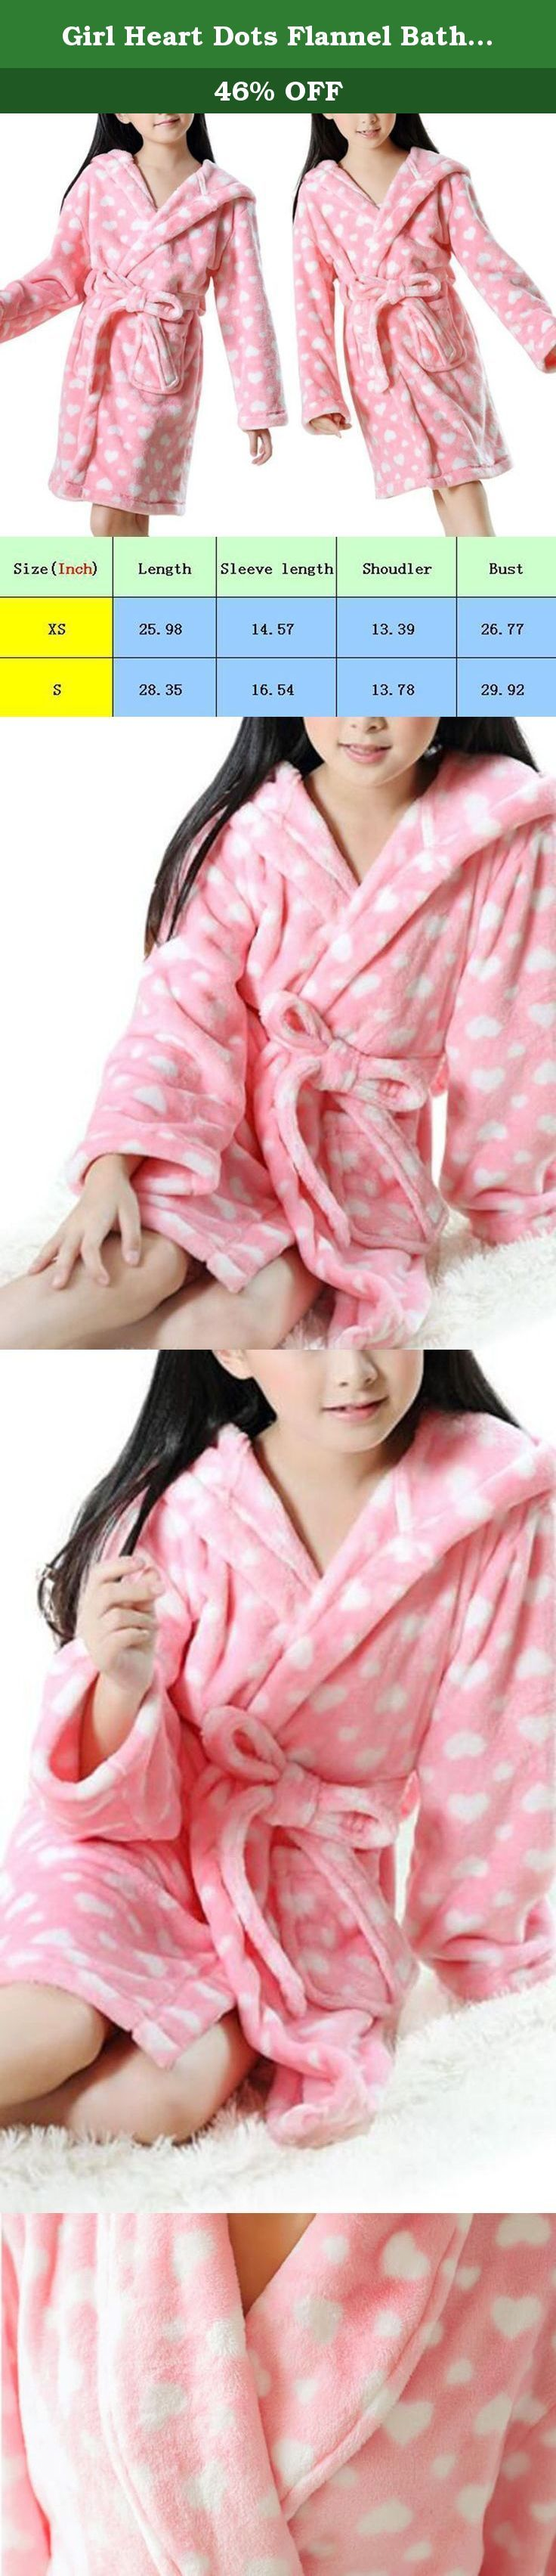 Girl Heart Dots Flannel Bath Robe Children Homewear Pajamas (S, style-1). Girl Heart Dots Flannel Bath Robe Children Homewear Pajamas use flannel material,wearing more close skin, fine workmanship, not ball, don't rub off. We have detailed size in our product picture, please choose the size according to ourselves' size chart. The size may be smaller than normal, please choose the bigger size than normal. Please allow little color difference due to different camera or lightenvironment…